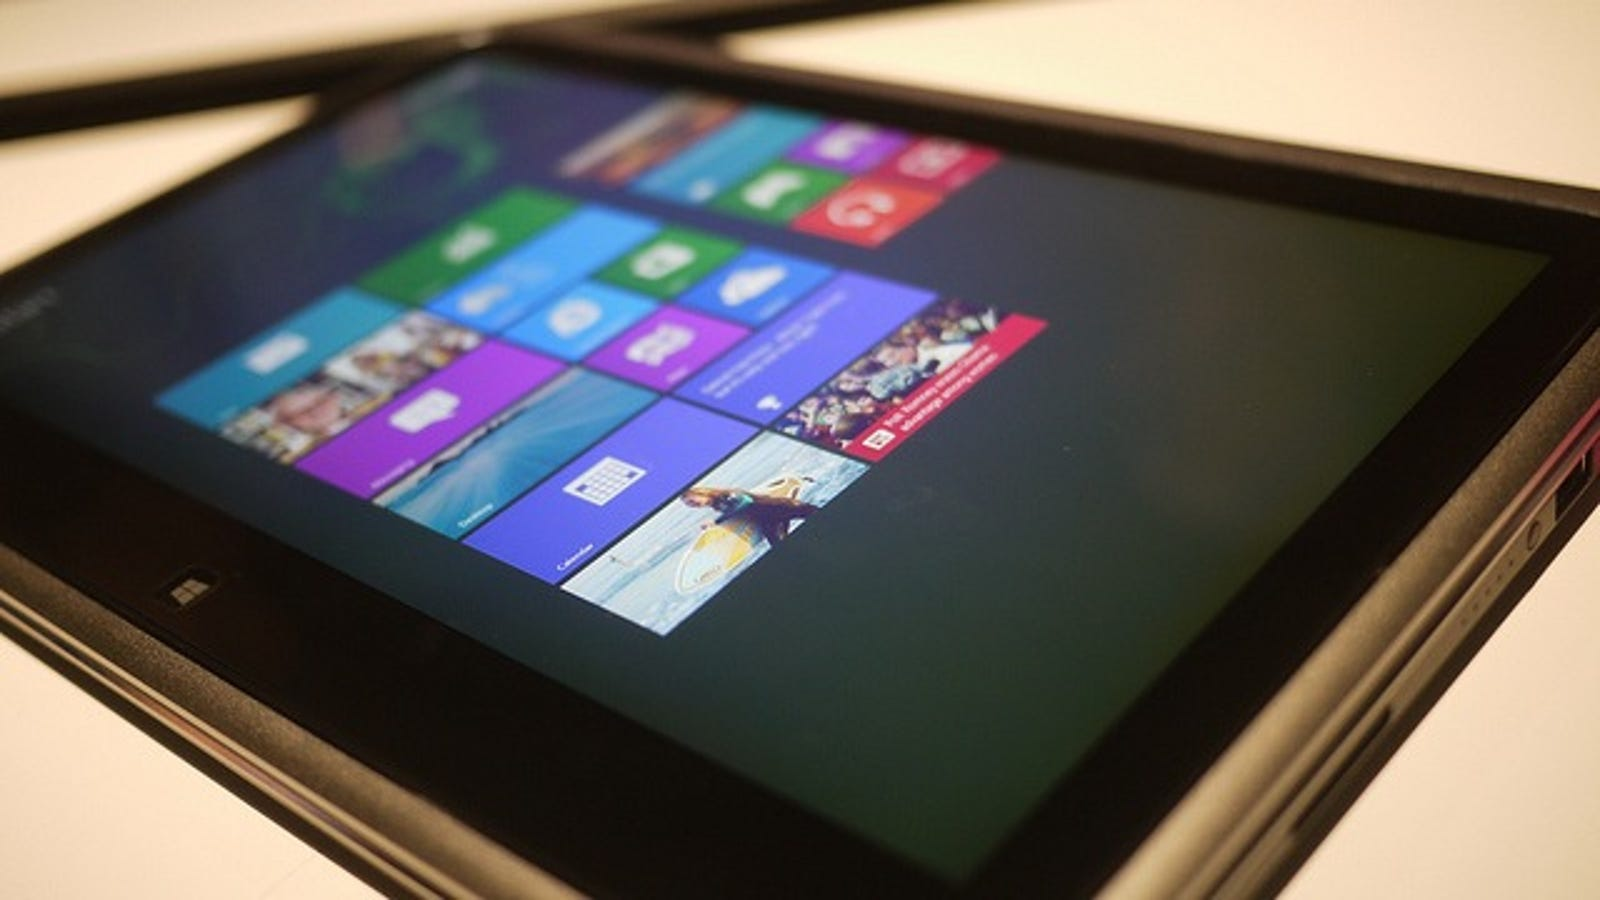 Install Android on a Windows 8 Tablet